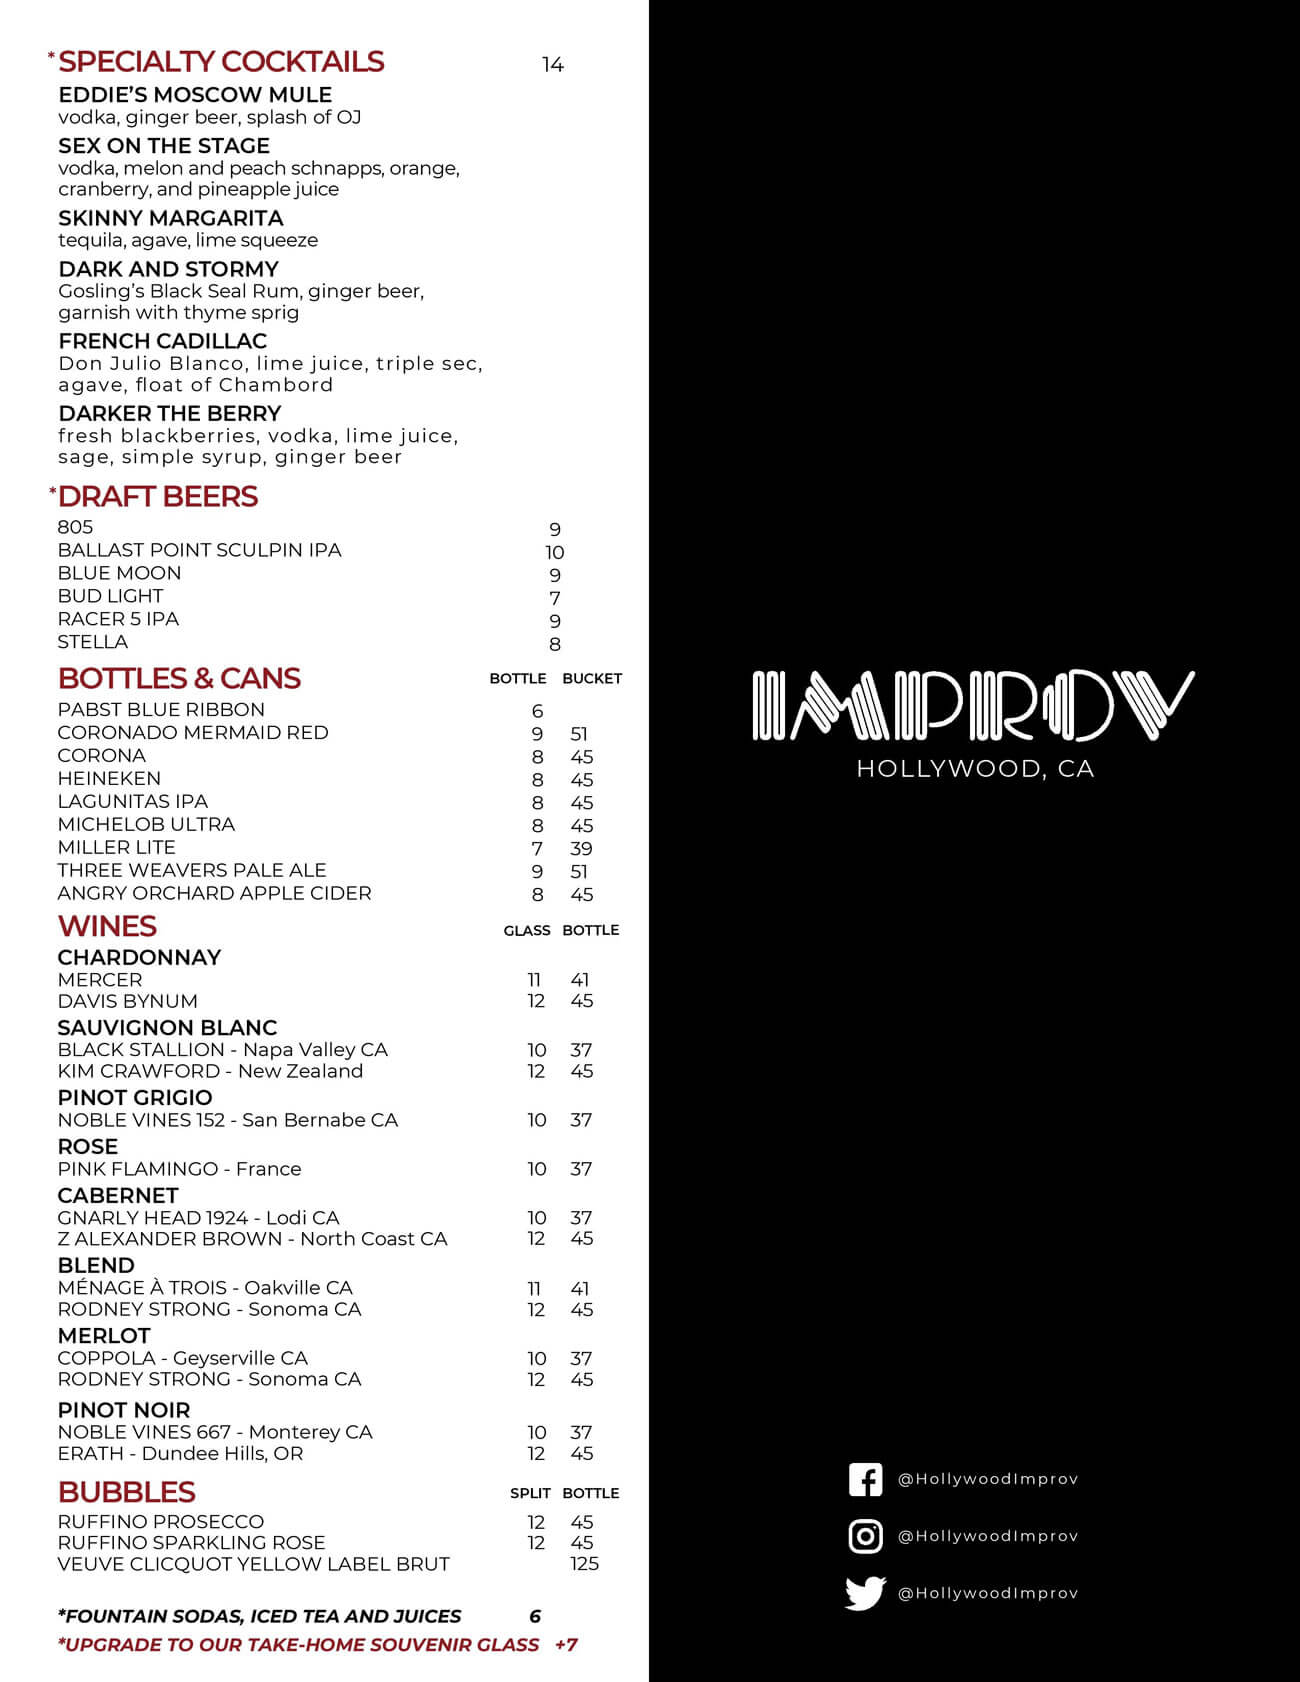 Hollywood Improv Drink Menu